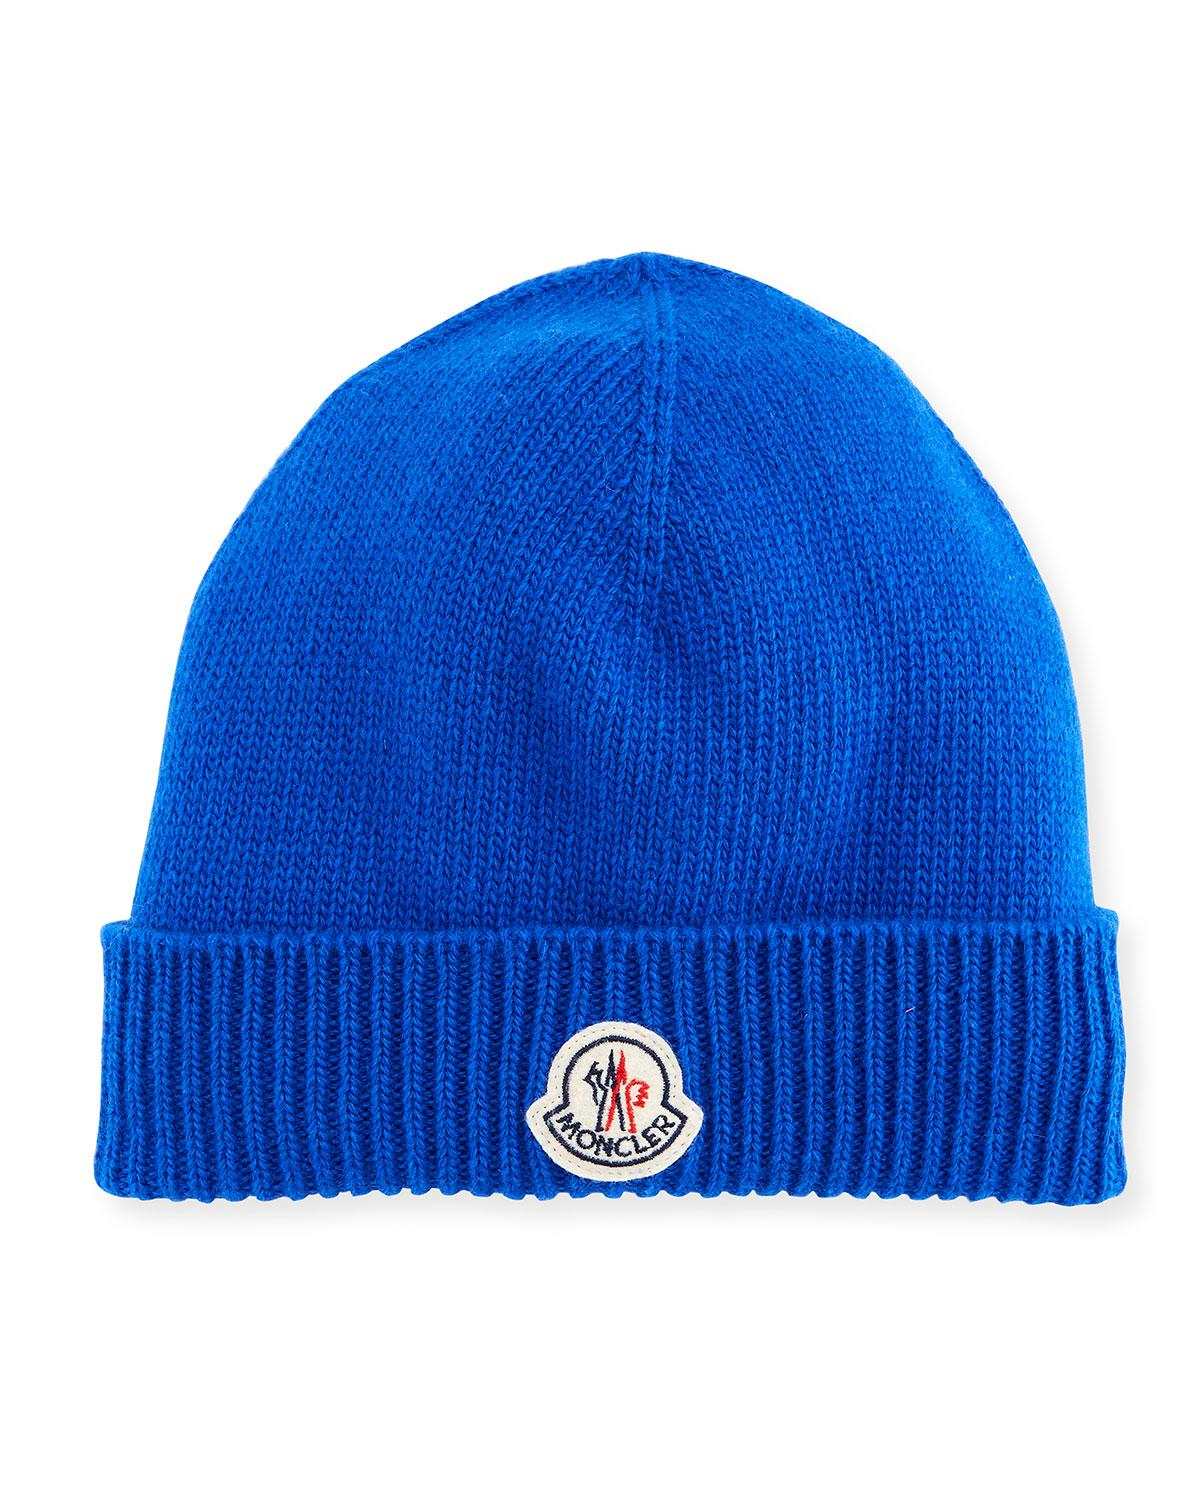 1eb3b79ccdfd7 Moncler Men s Berretto Wool Beanie Hat In Blue